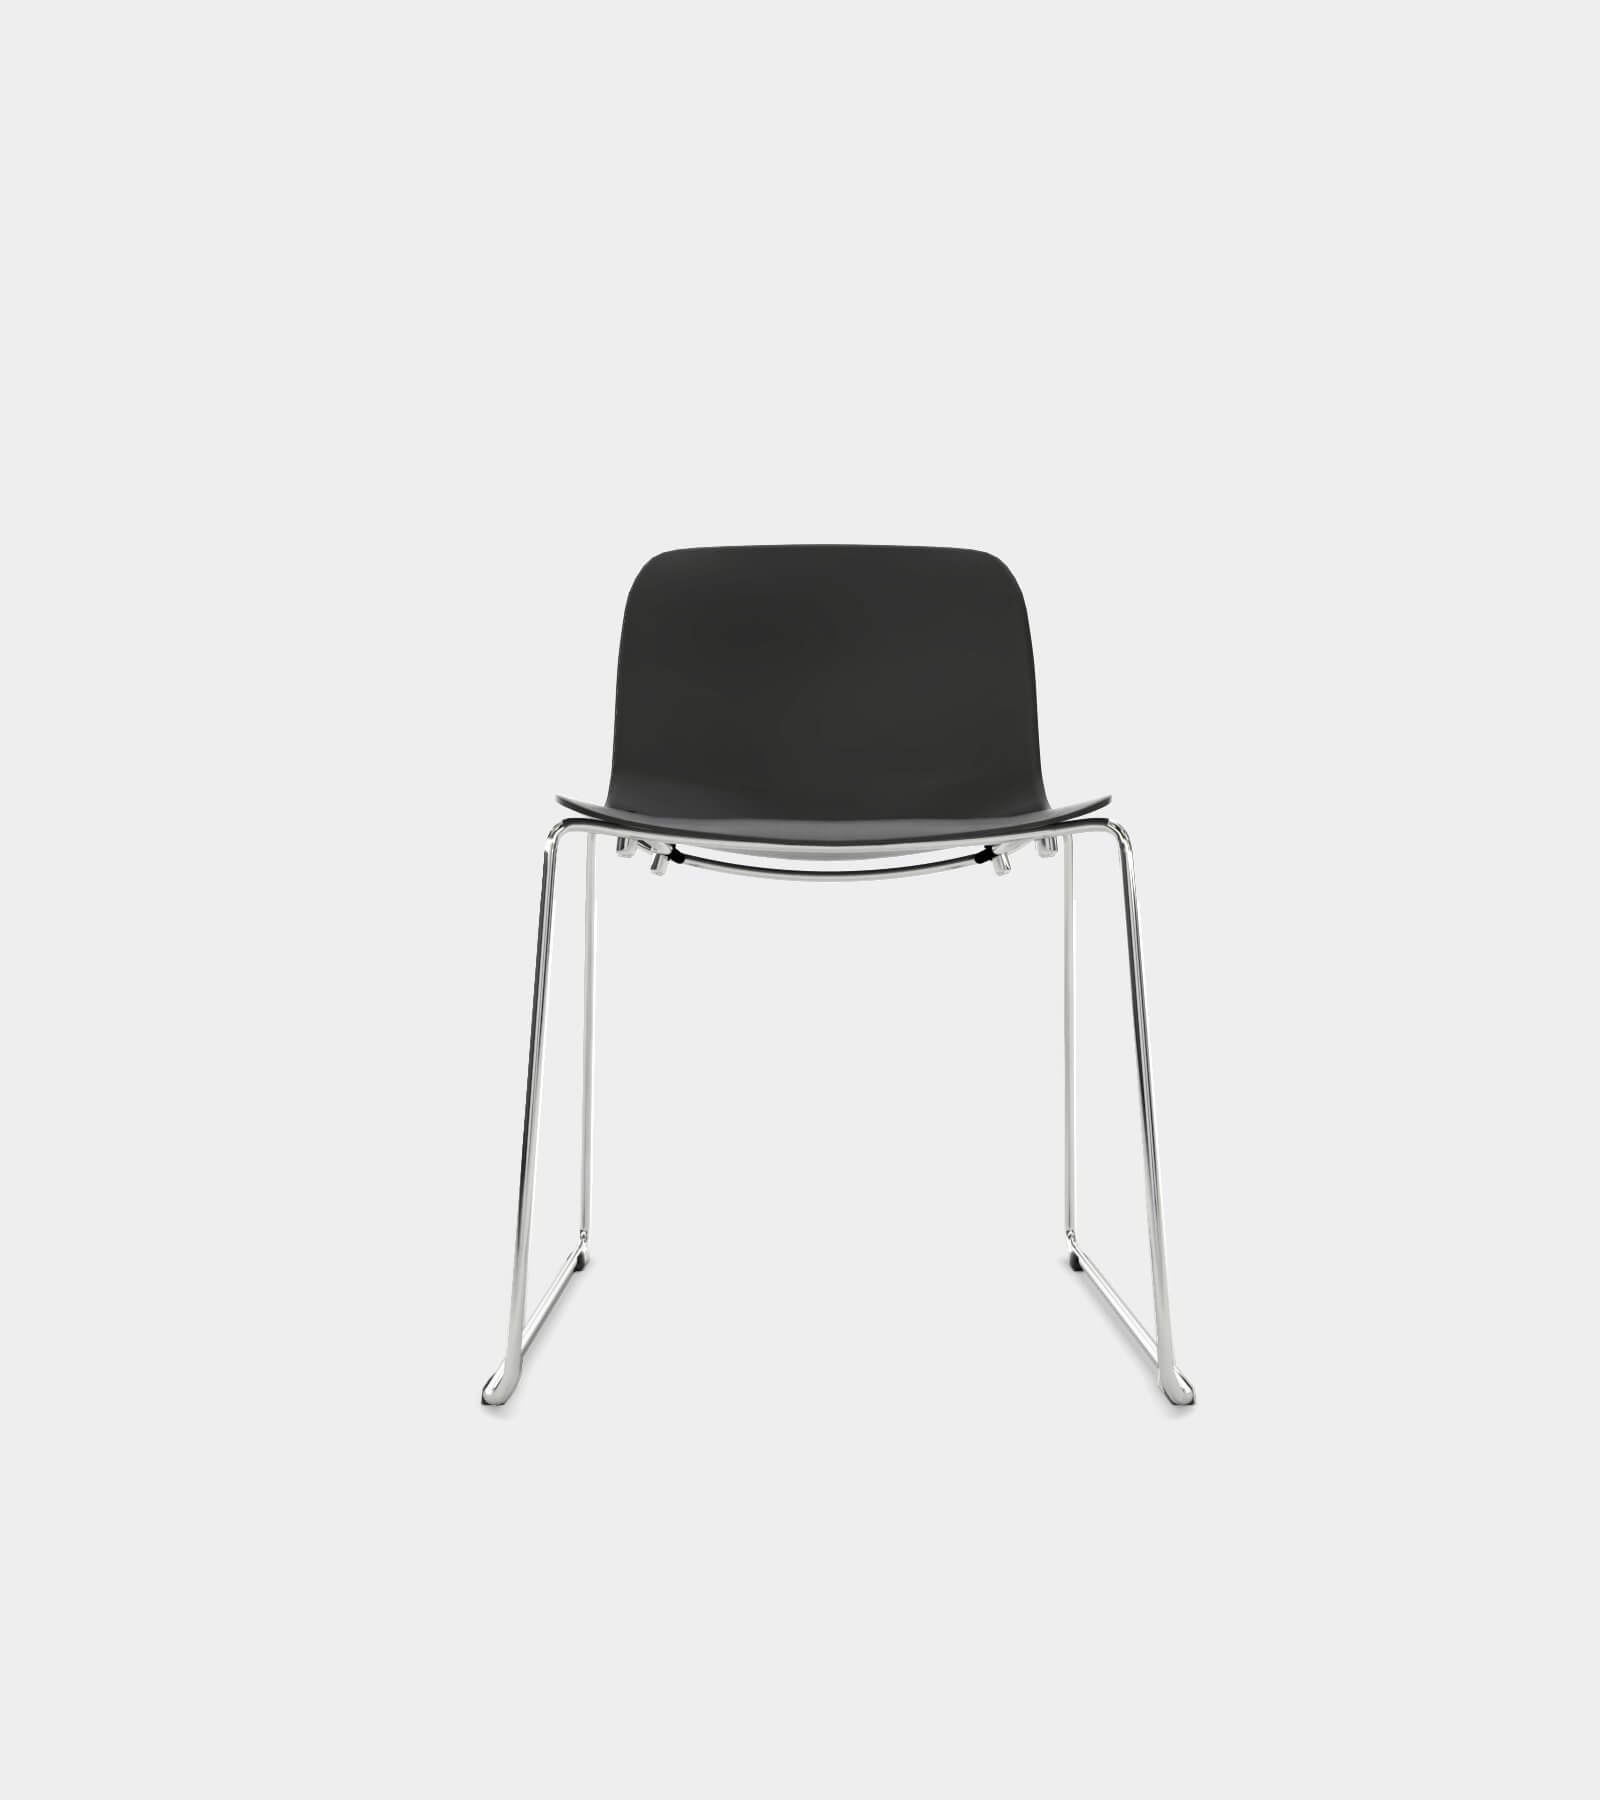 Chair with chrome frame and black seat 2- 3D Model